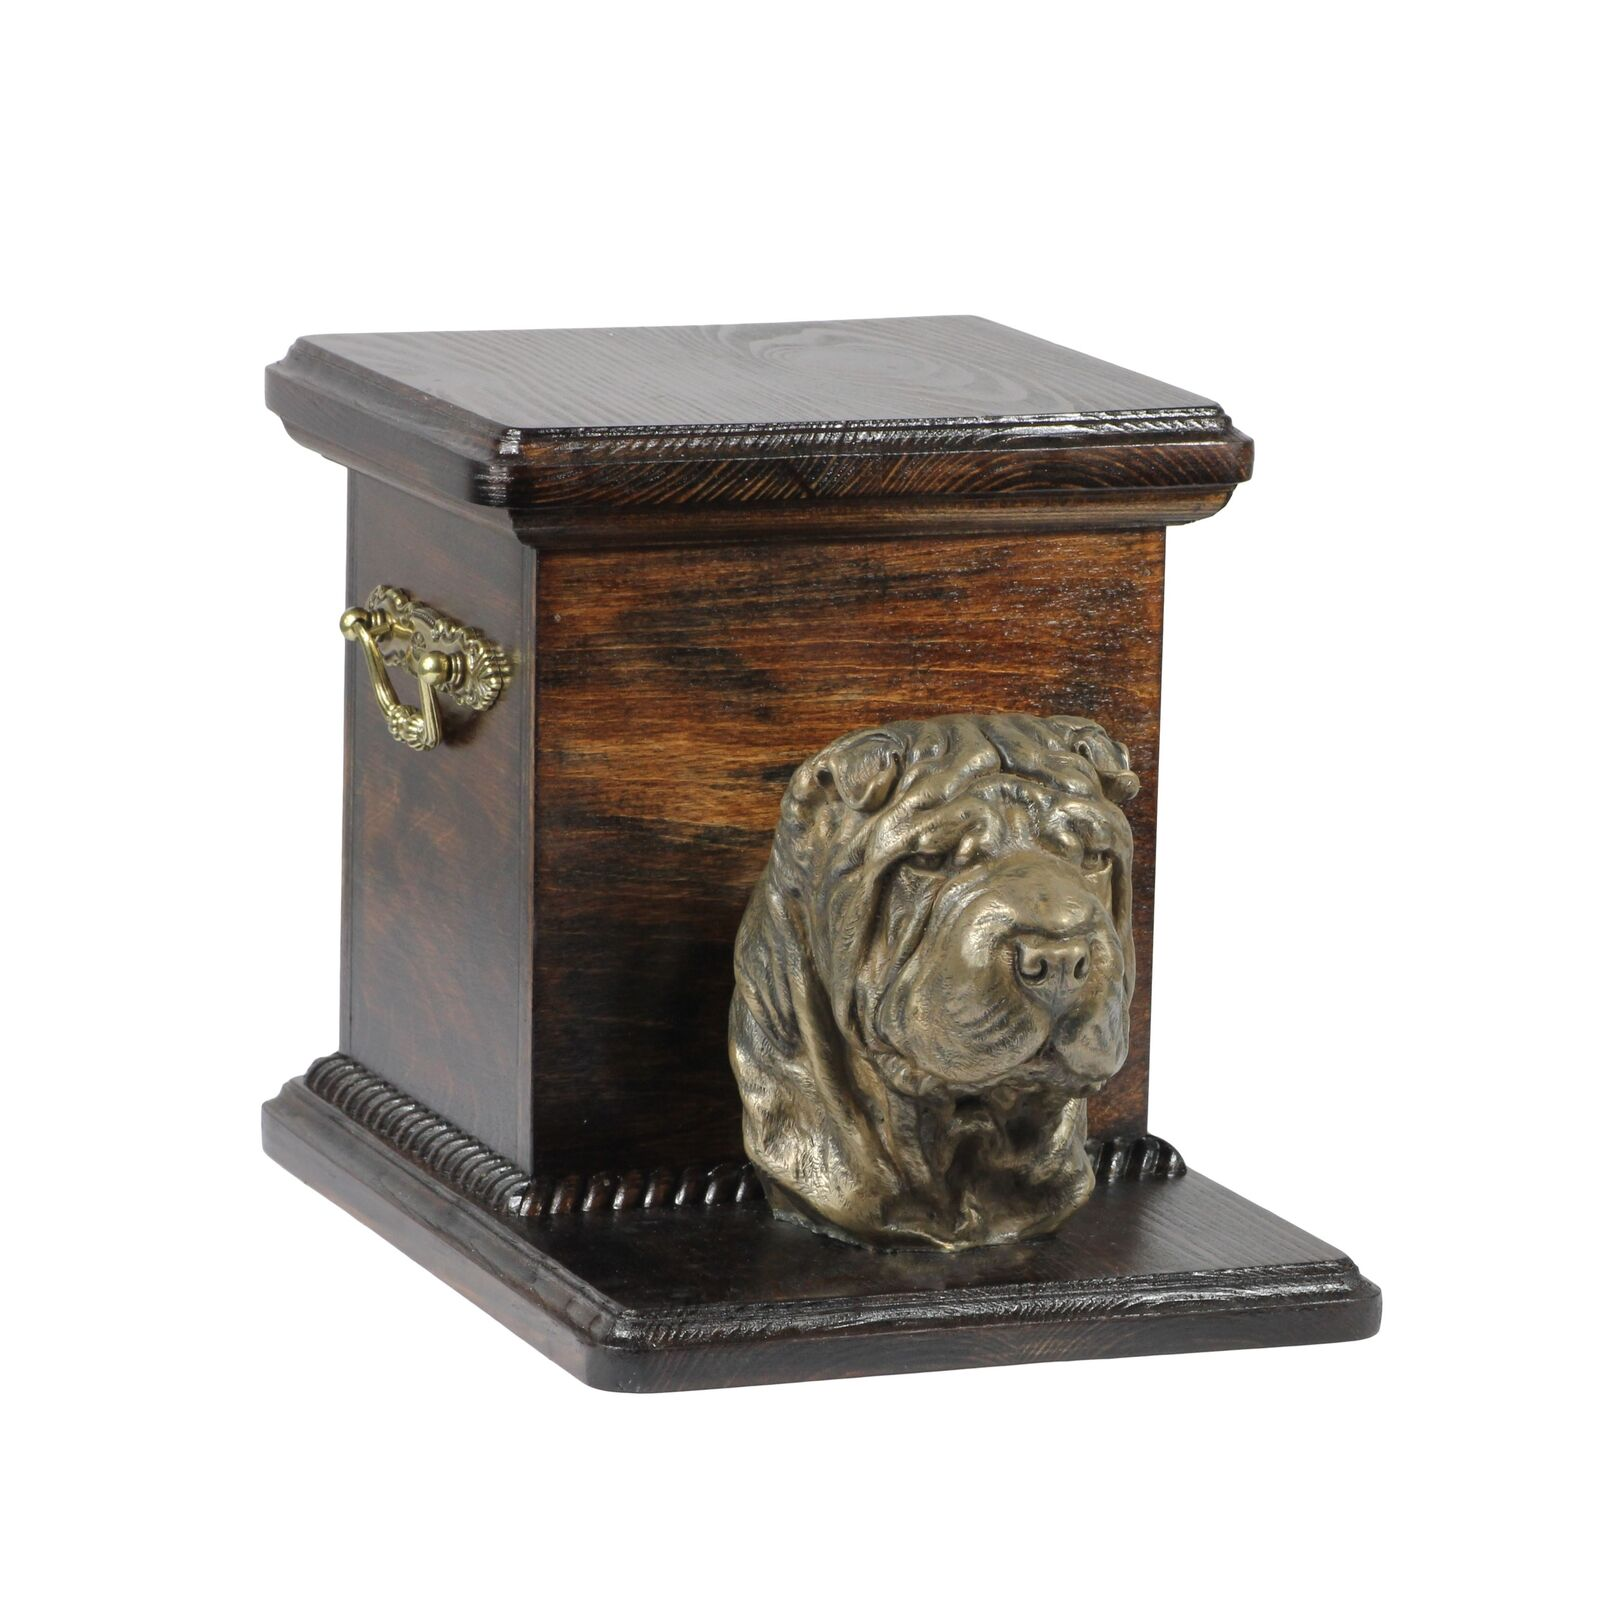 Shar Pei - wooden exclusive urn for dog with statue, Art Dog type 3